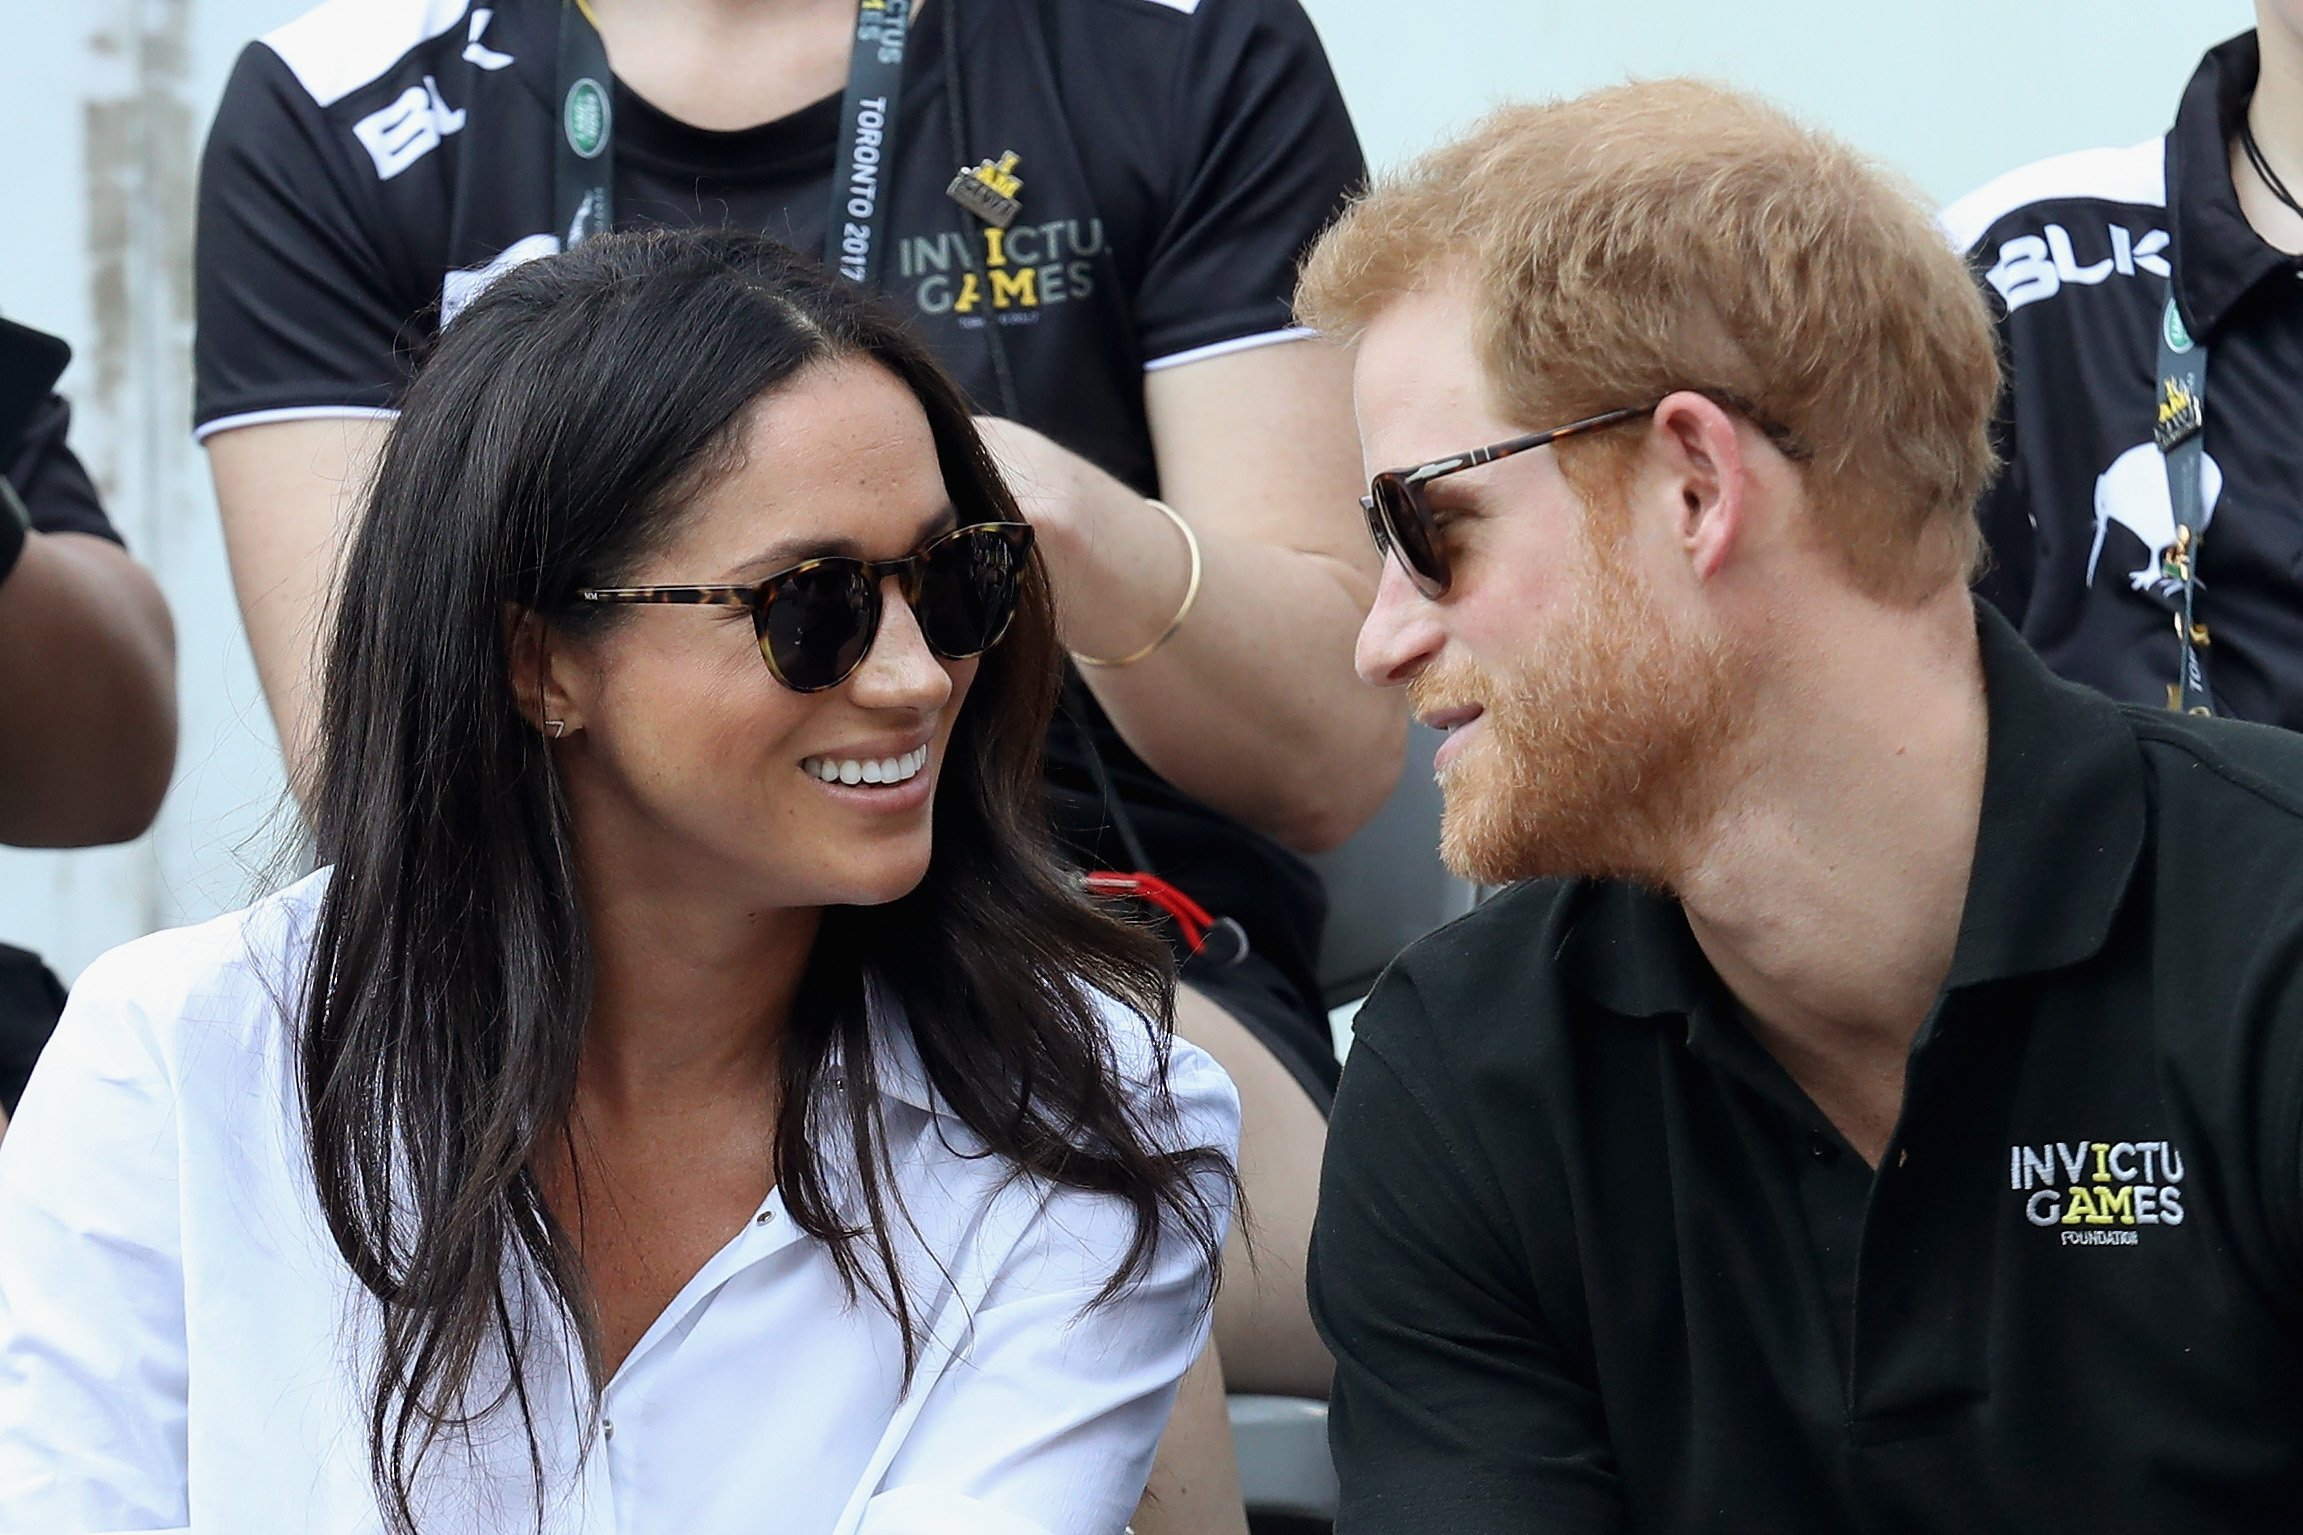 Image Source: Getty Images/Prince Harry and Meghan Markle during the Invictus Games